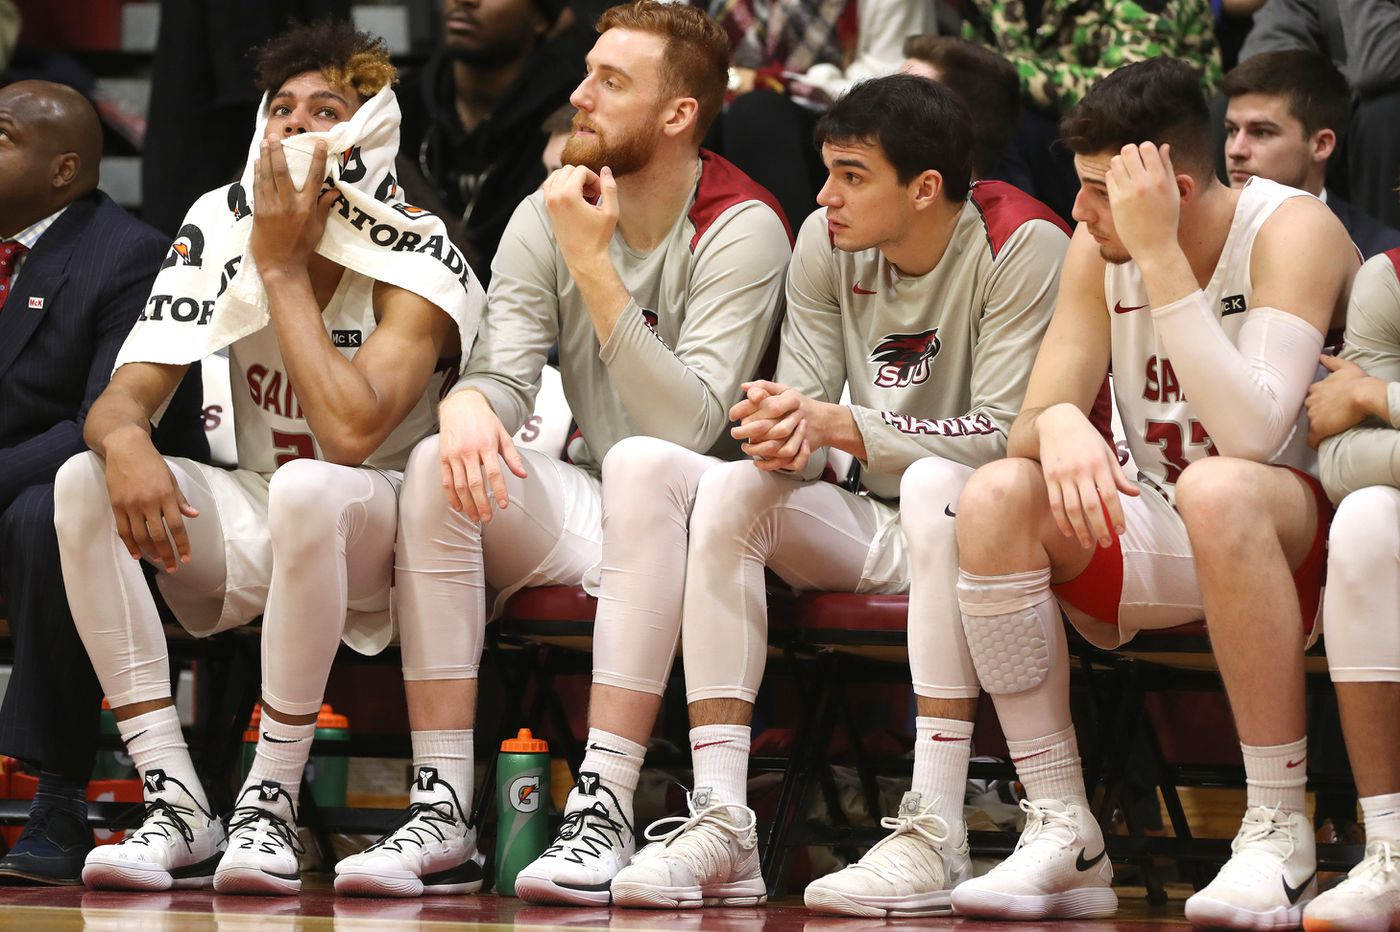 Saint Joseph's needs to find answers quickly or the season could be lost